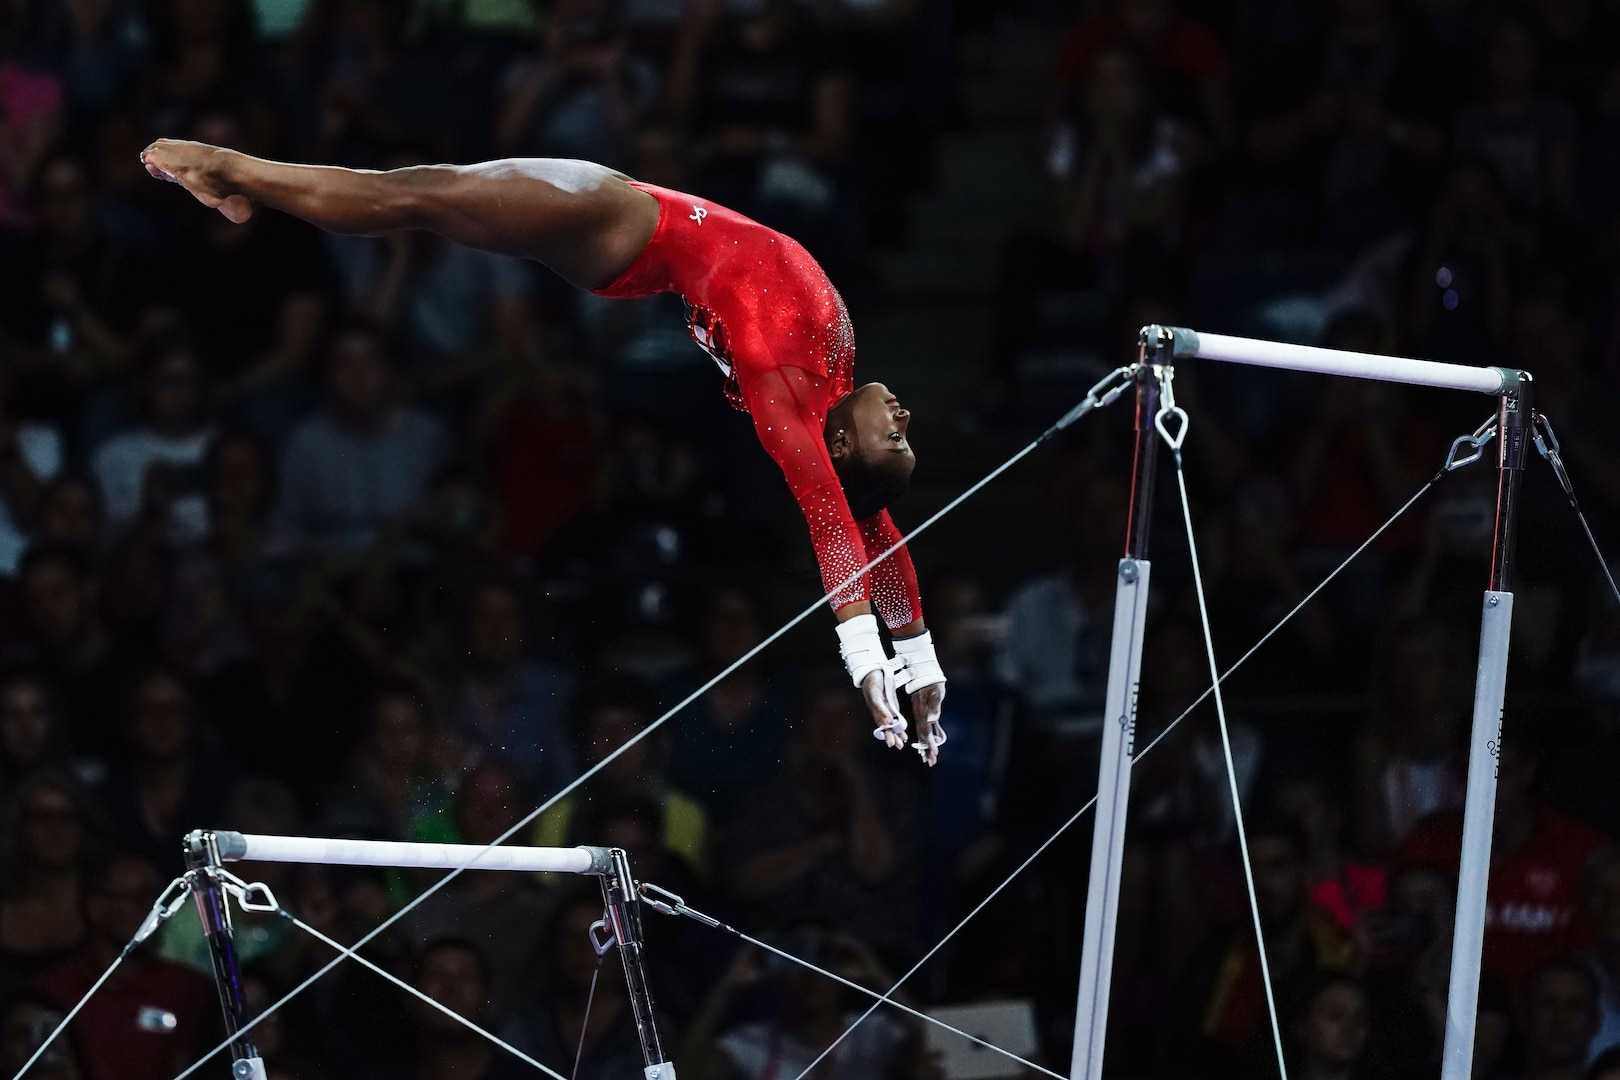 A gymnast travels between the low and high uneven bars.